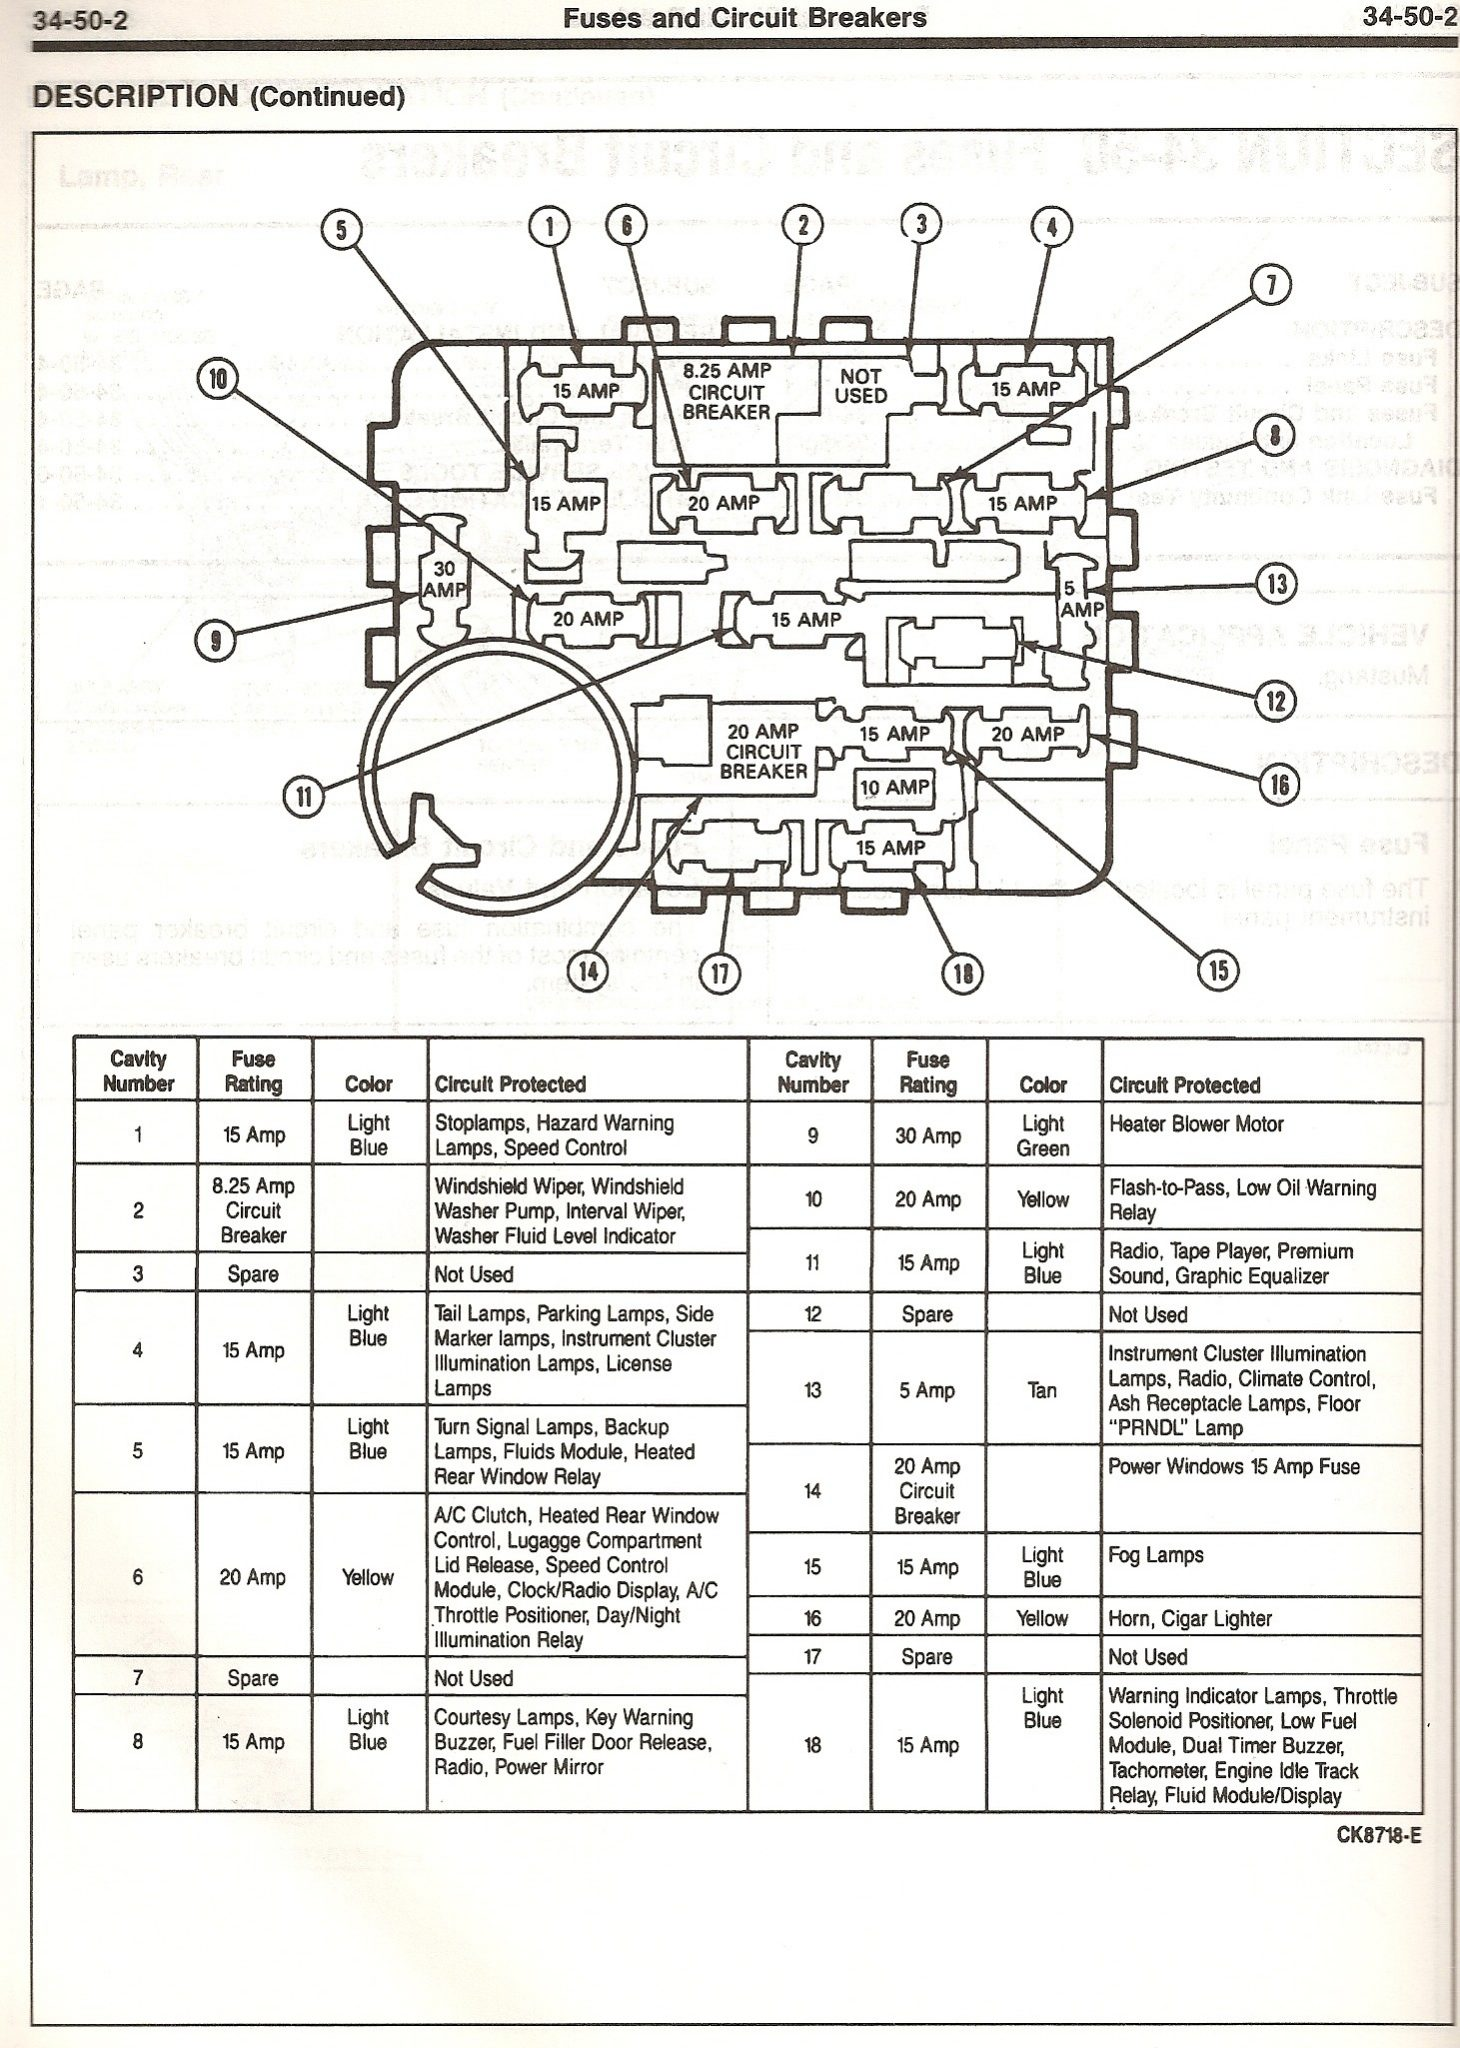 wiring diagram for 1988 firebird with Brake Light Switch 1999 Ford F250 Super Duty on Wiring Diagrams And Pinouts besides C3 Corvette Ac Heater Duct Diagram additionally Gm Solenoid Wiring Diagram also 1968 Mustang Convertible Top Switch Wiring Diagram furthermore 97 3800 V6 Firebird Engine Diagram.